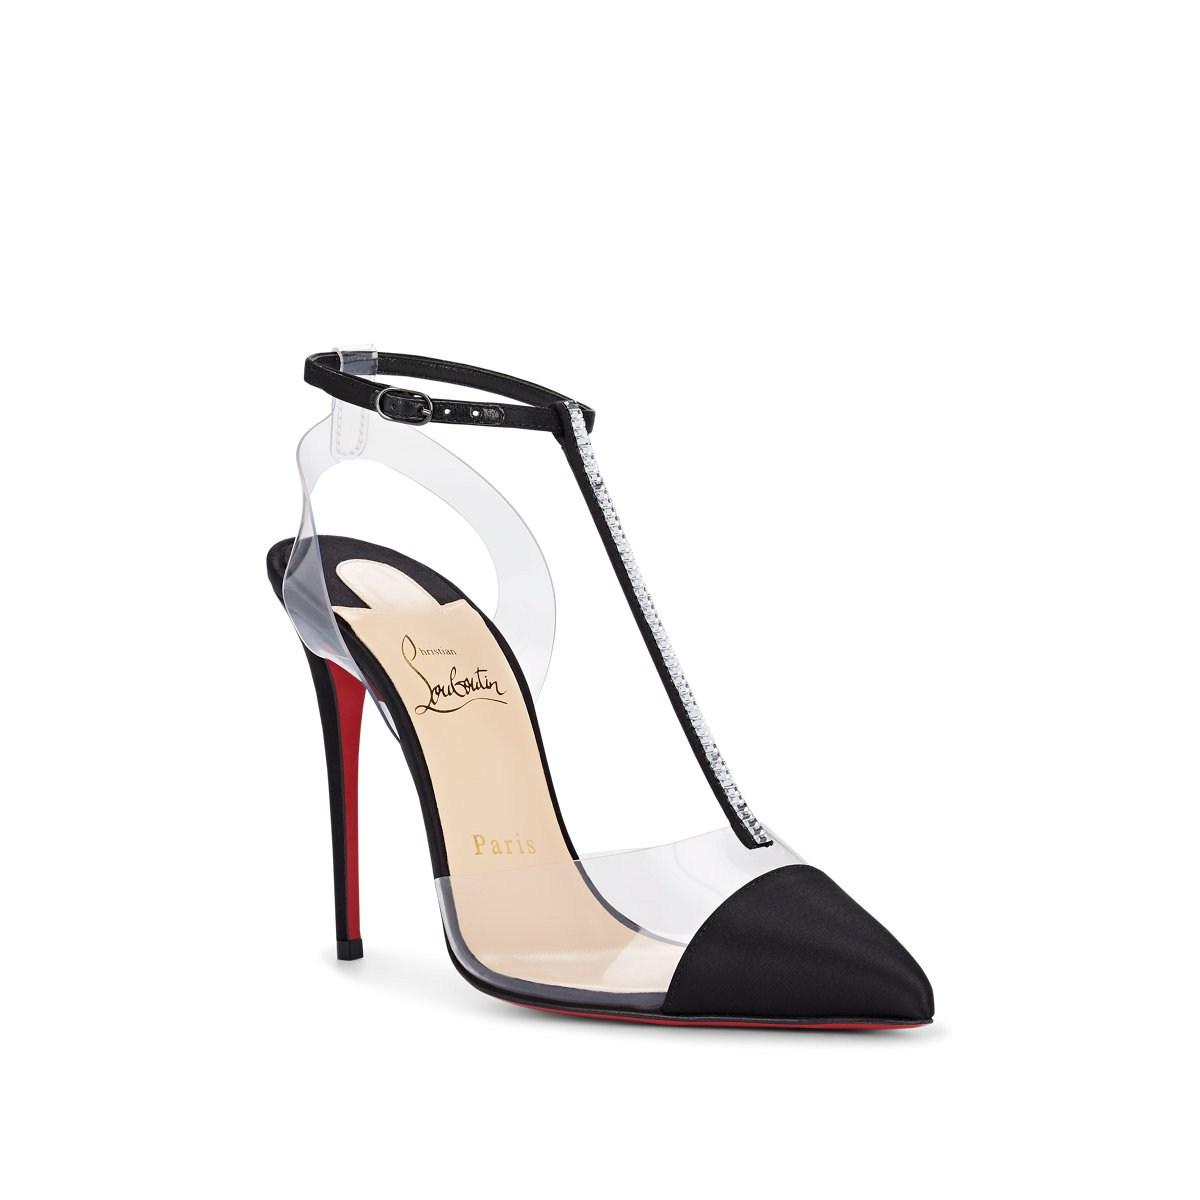 fec0e104885e Christian Louboutin - Nosy Strass 100 Black Satin T-strap Pumps - Lyst.  View fullscreen